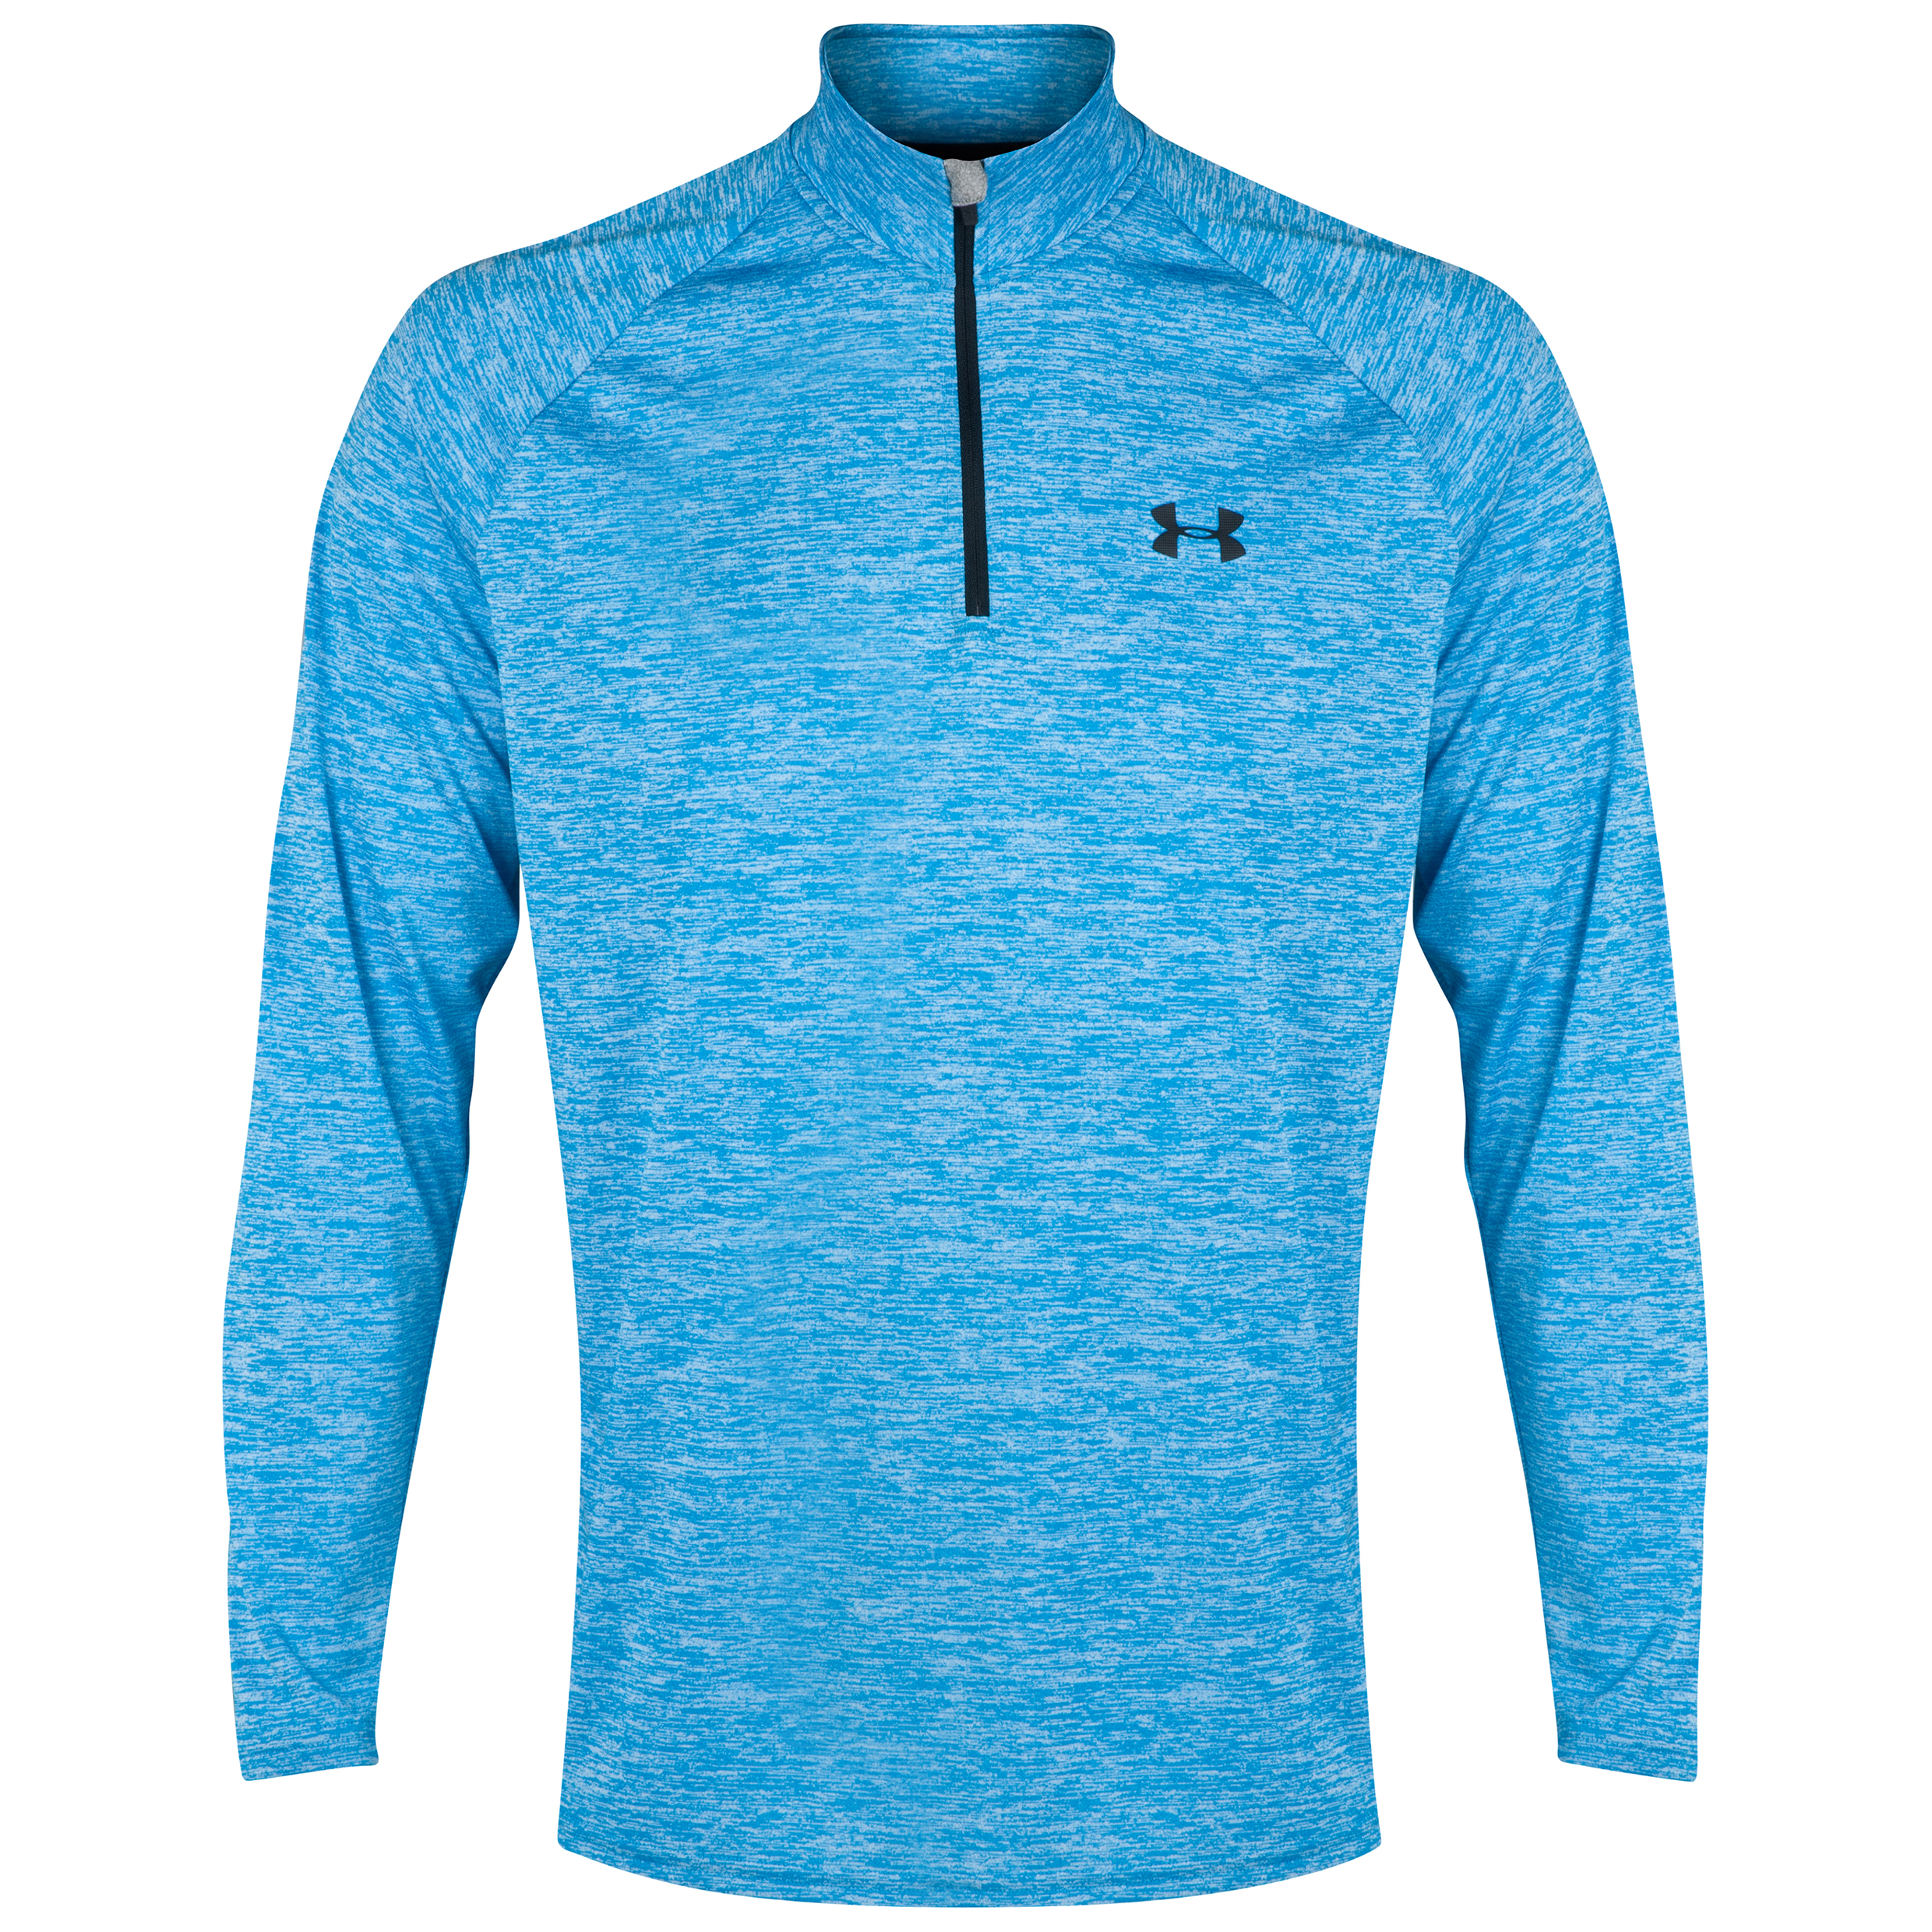 Under Armour Tech 1/4 Zip Top Blue